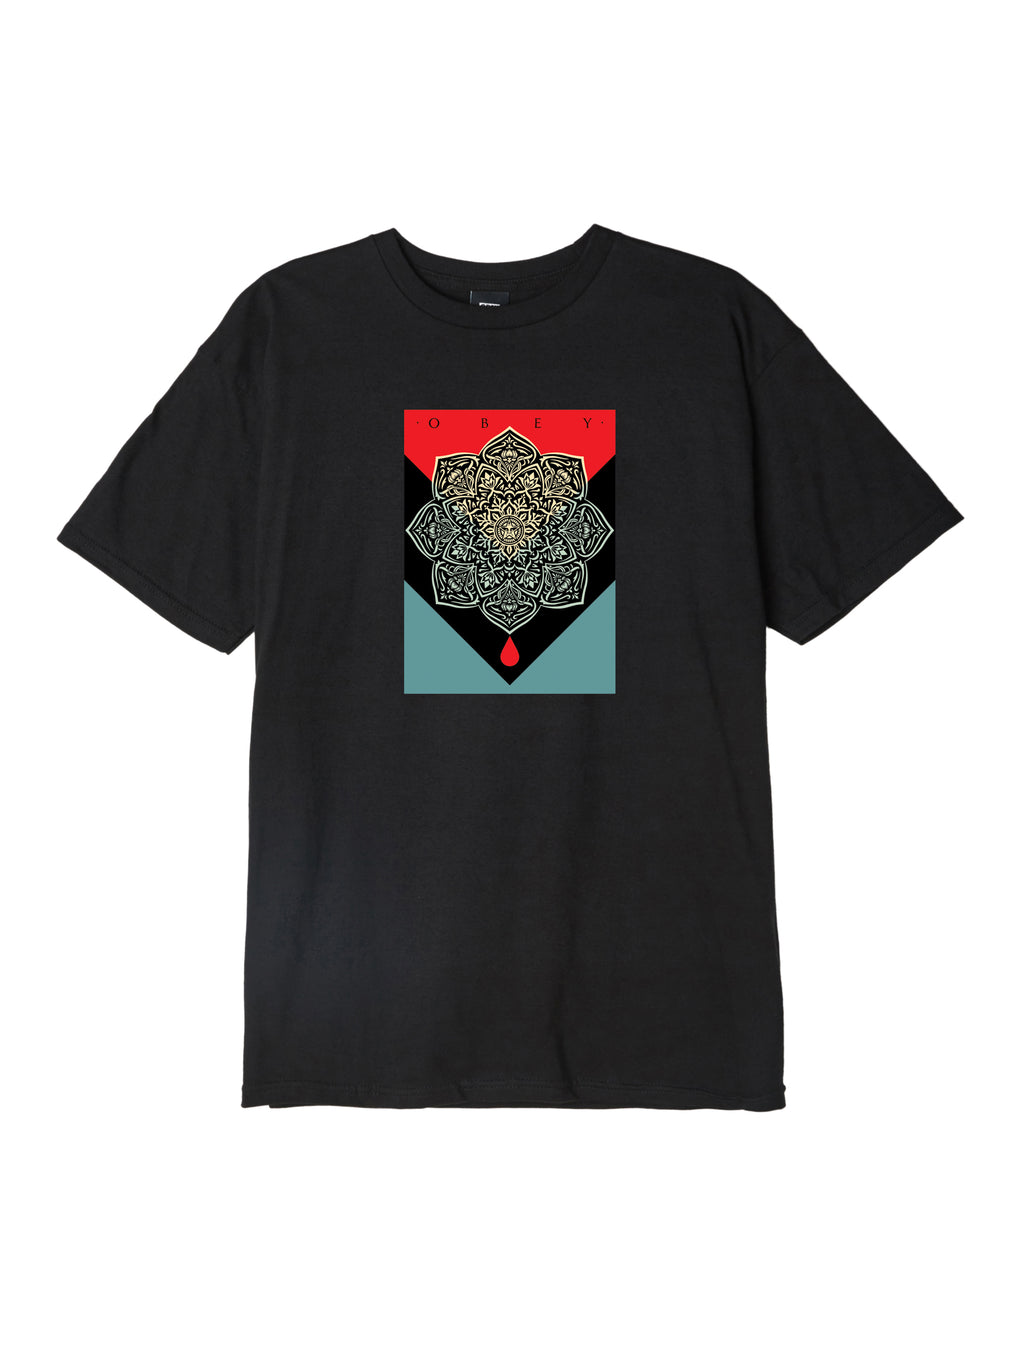 OBEY - Blood & Oil Mandala Men's Tee, Black